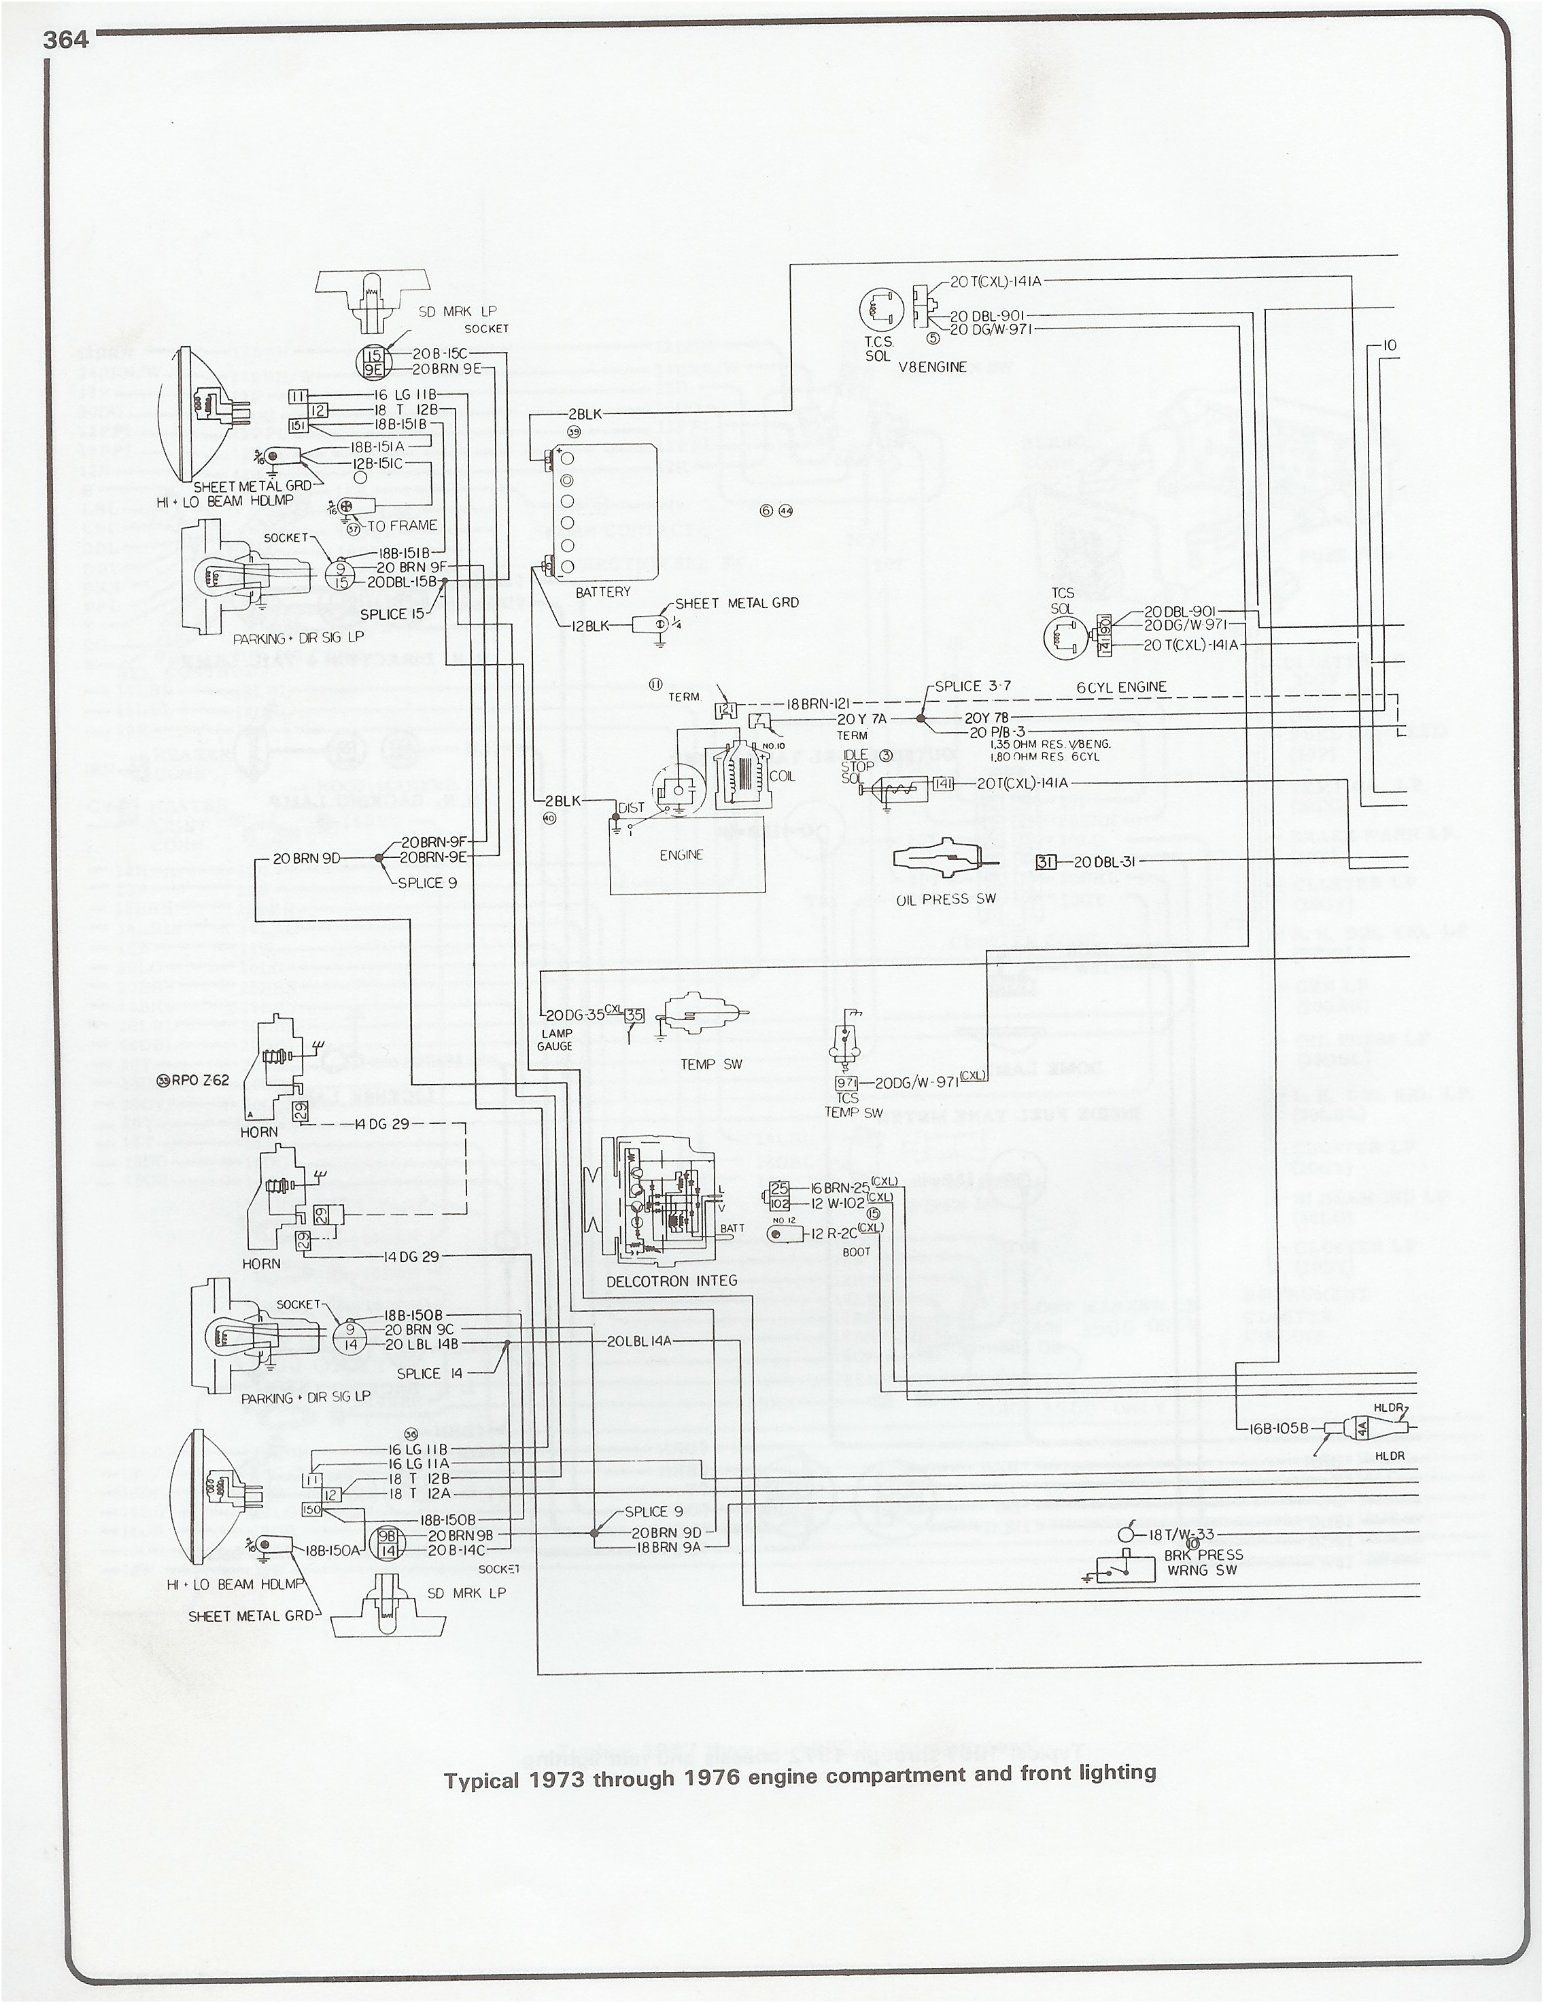 small resolution of wiring diagram 1973 1976 chevy pickup chevy wiring diagram 1975 chevy nova wiring diagram 1975 chevy wire diagram